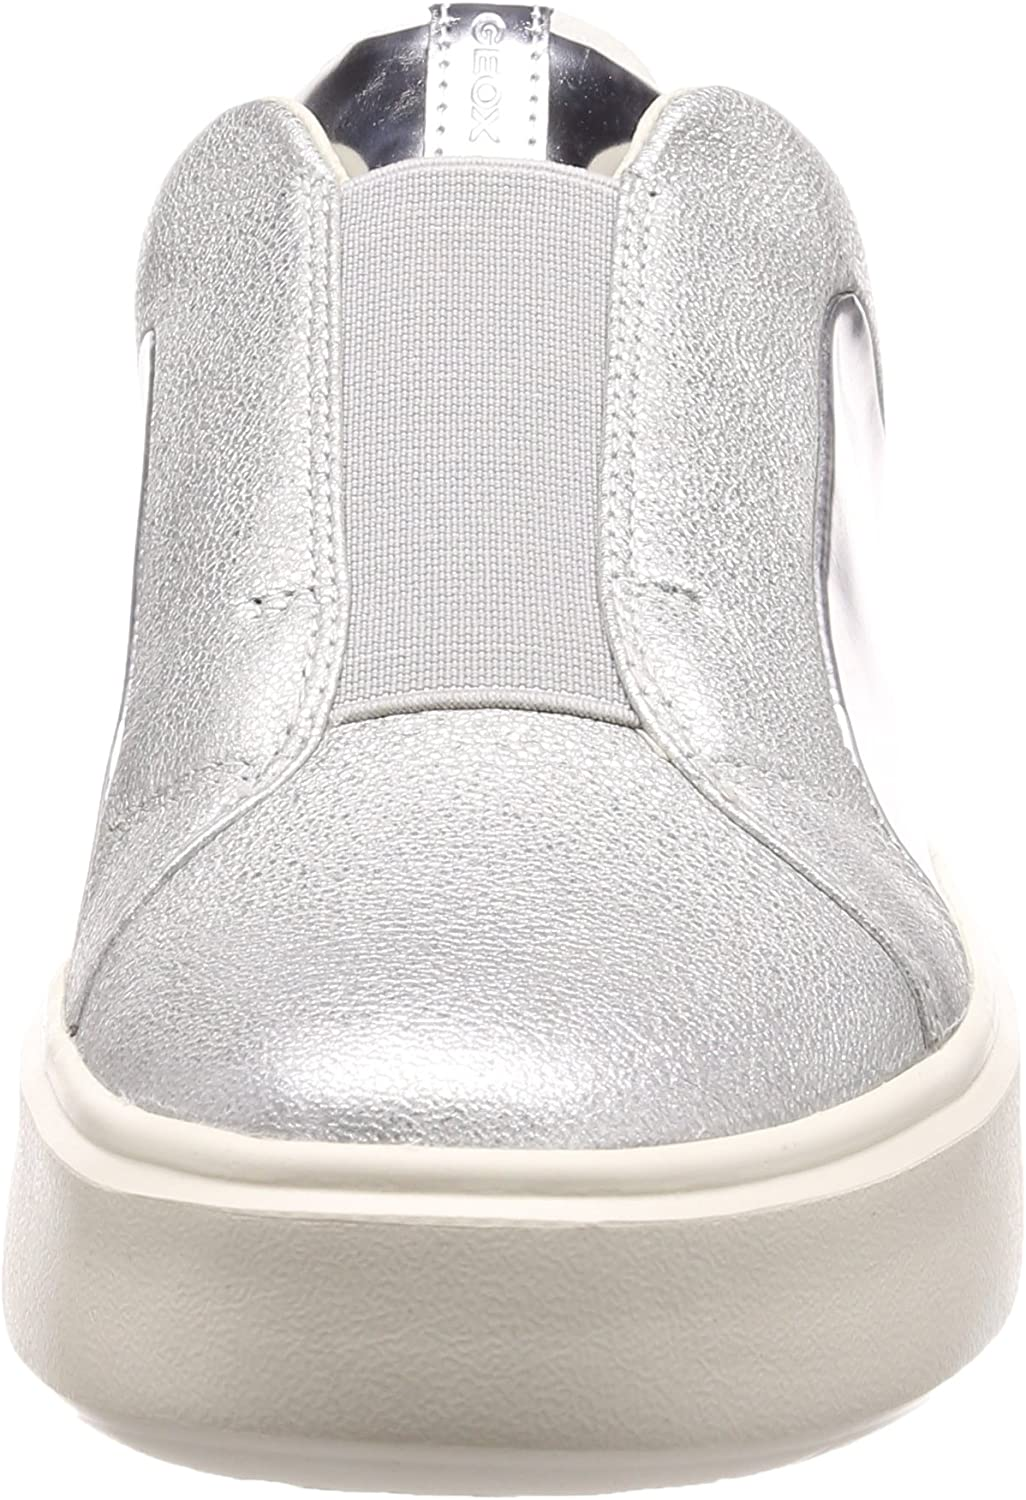 Geox - Sneakers Slip on Donna in Pelle con Platform - Argento Nhenbus D828DB 0KYBN C1007 - D828DB 0KYBN C1007 Argento